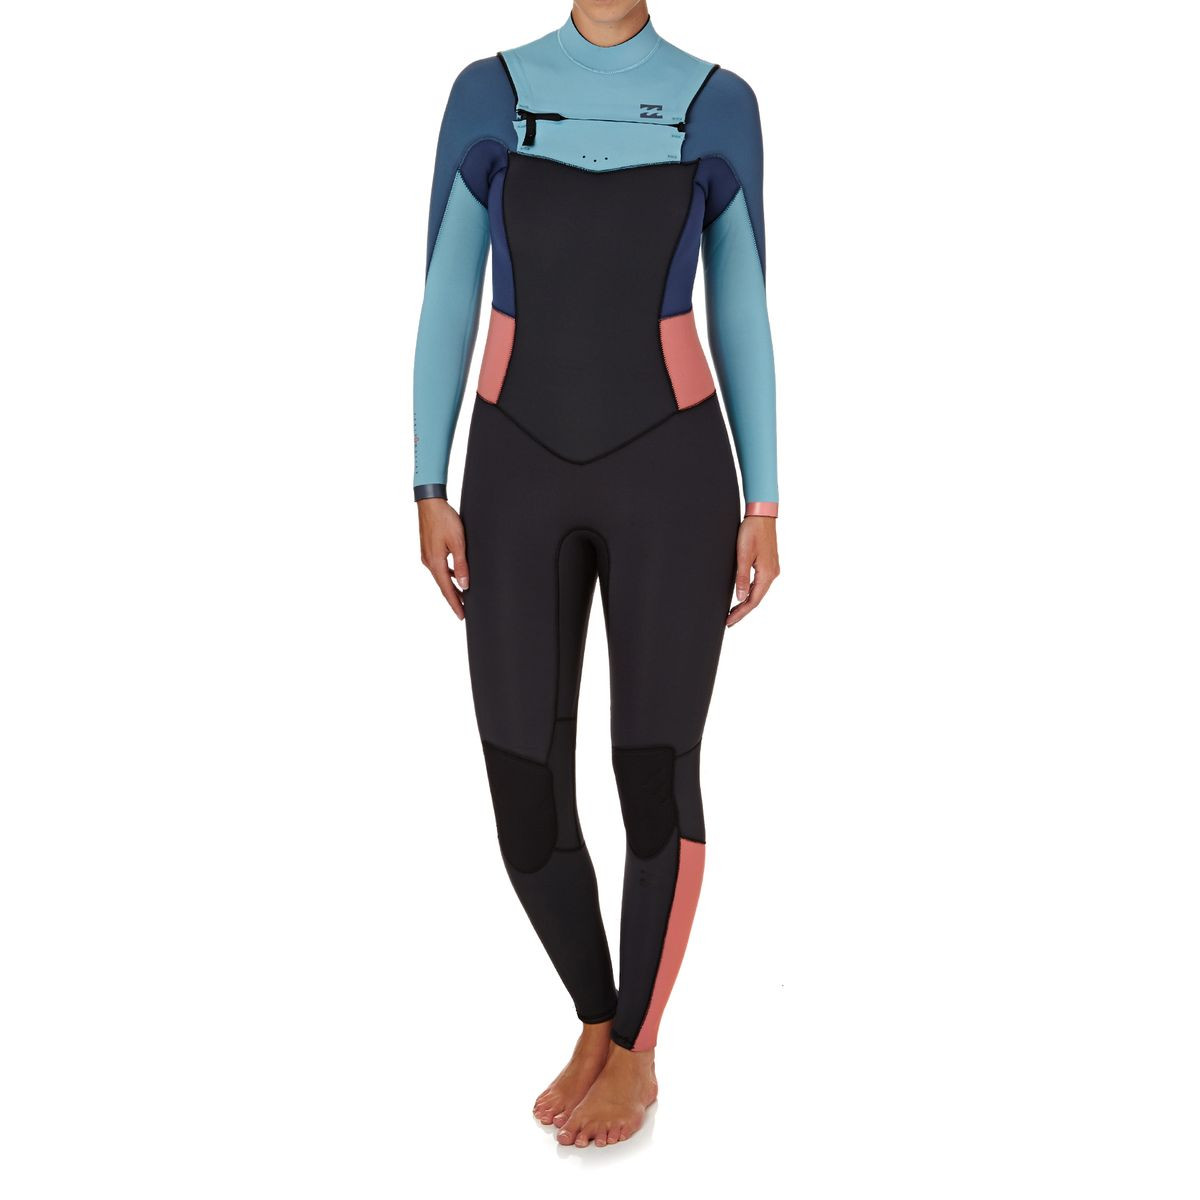 Billabong Womens Synergy 4/3mm 2018 Chest Zip Wetsuit - Agave